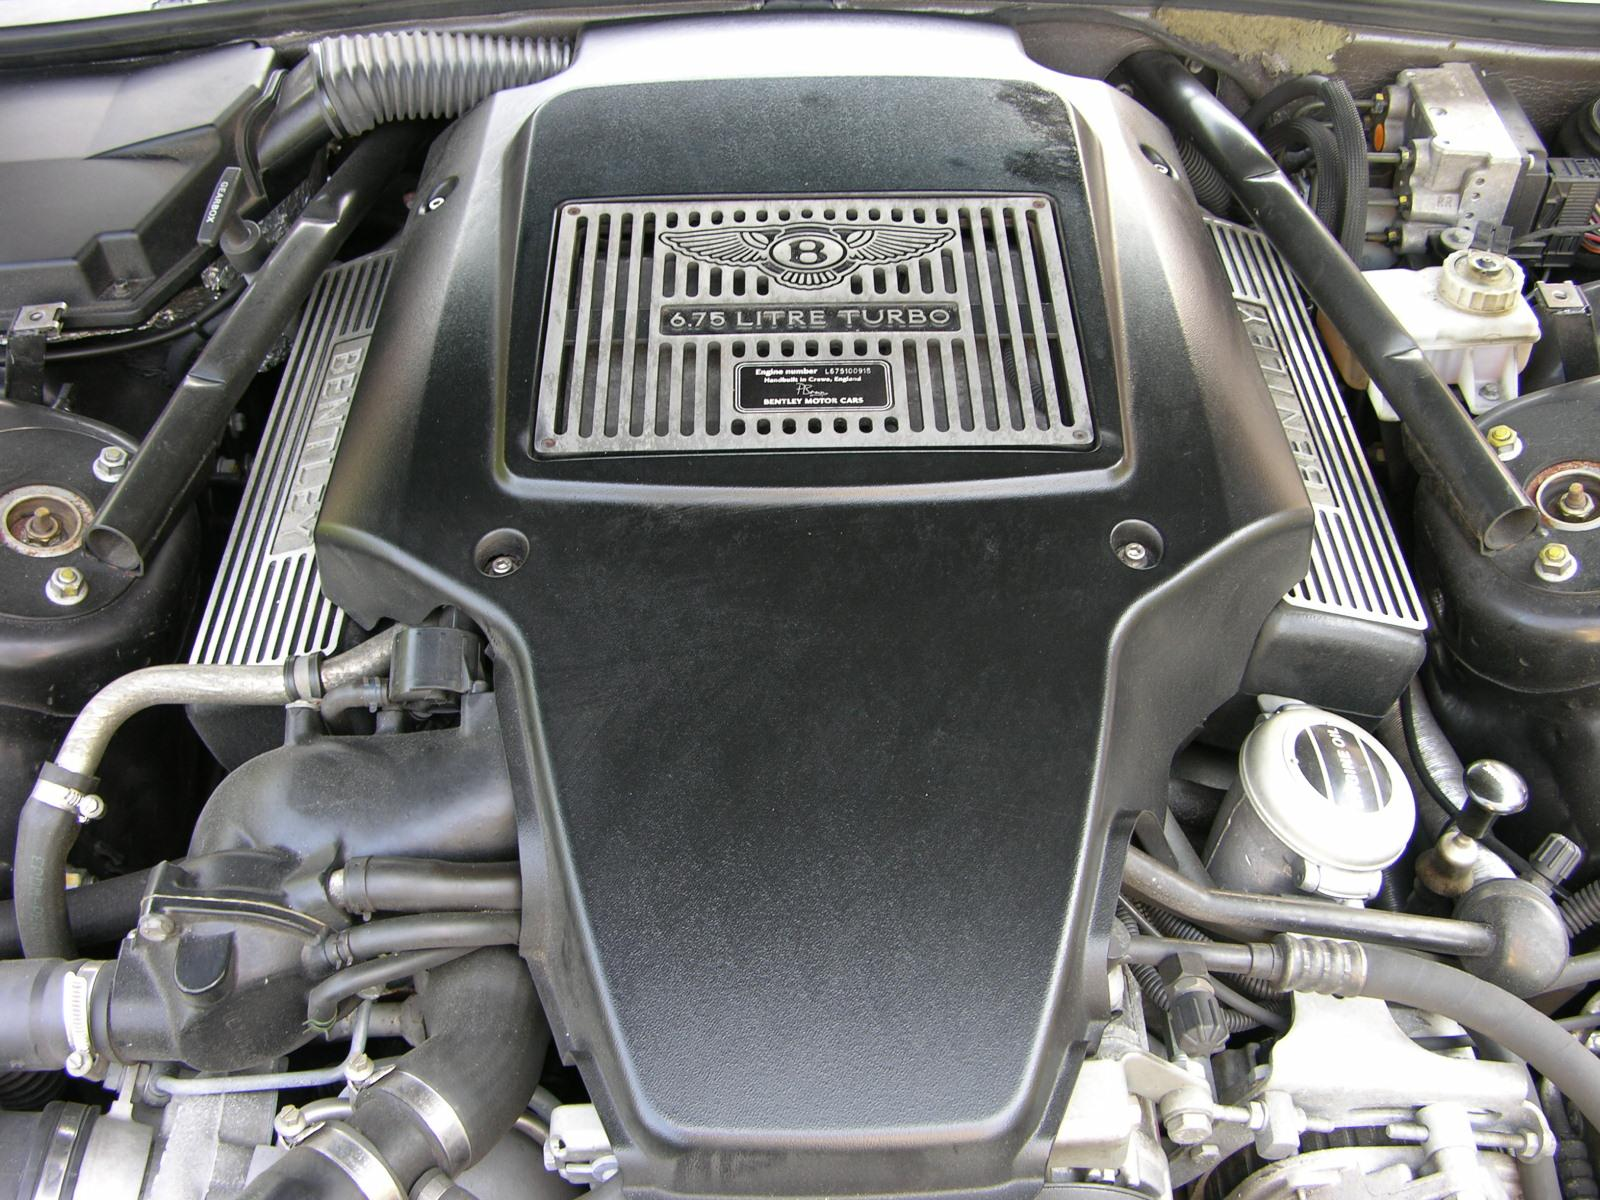 File:Bentley Arnage Red Label Engine.jpg - Wikimedia Commons